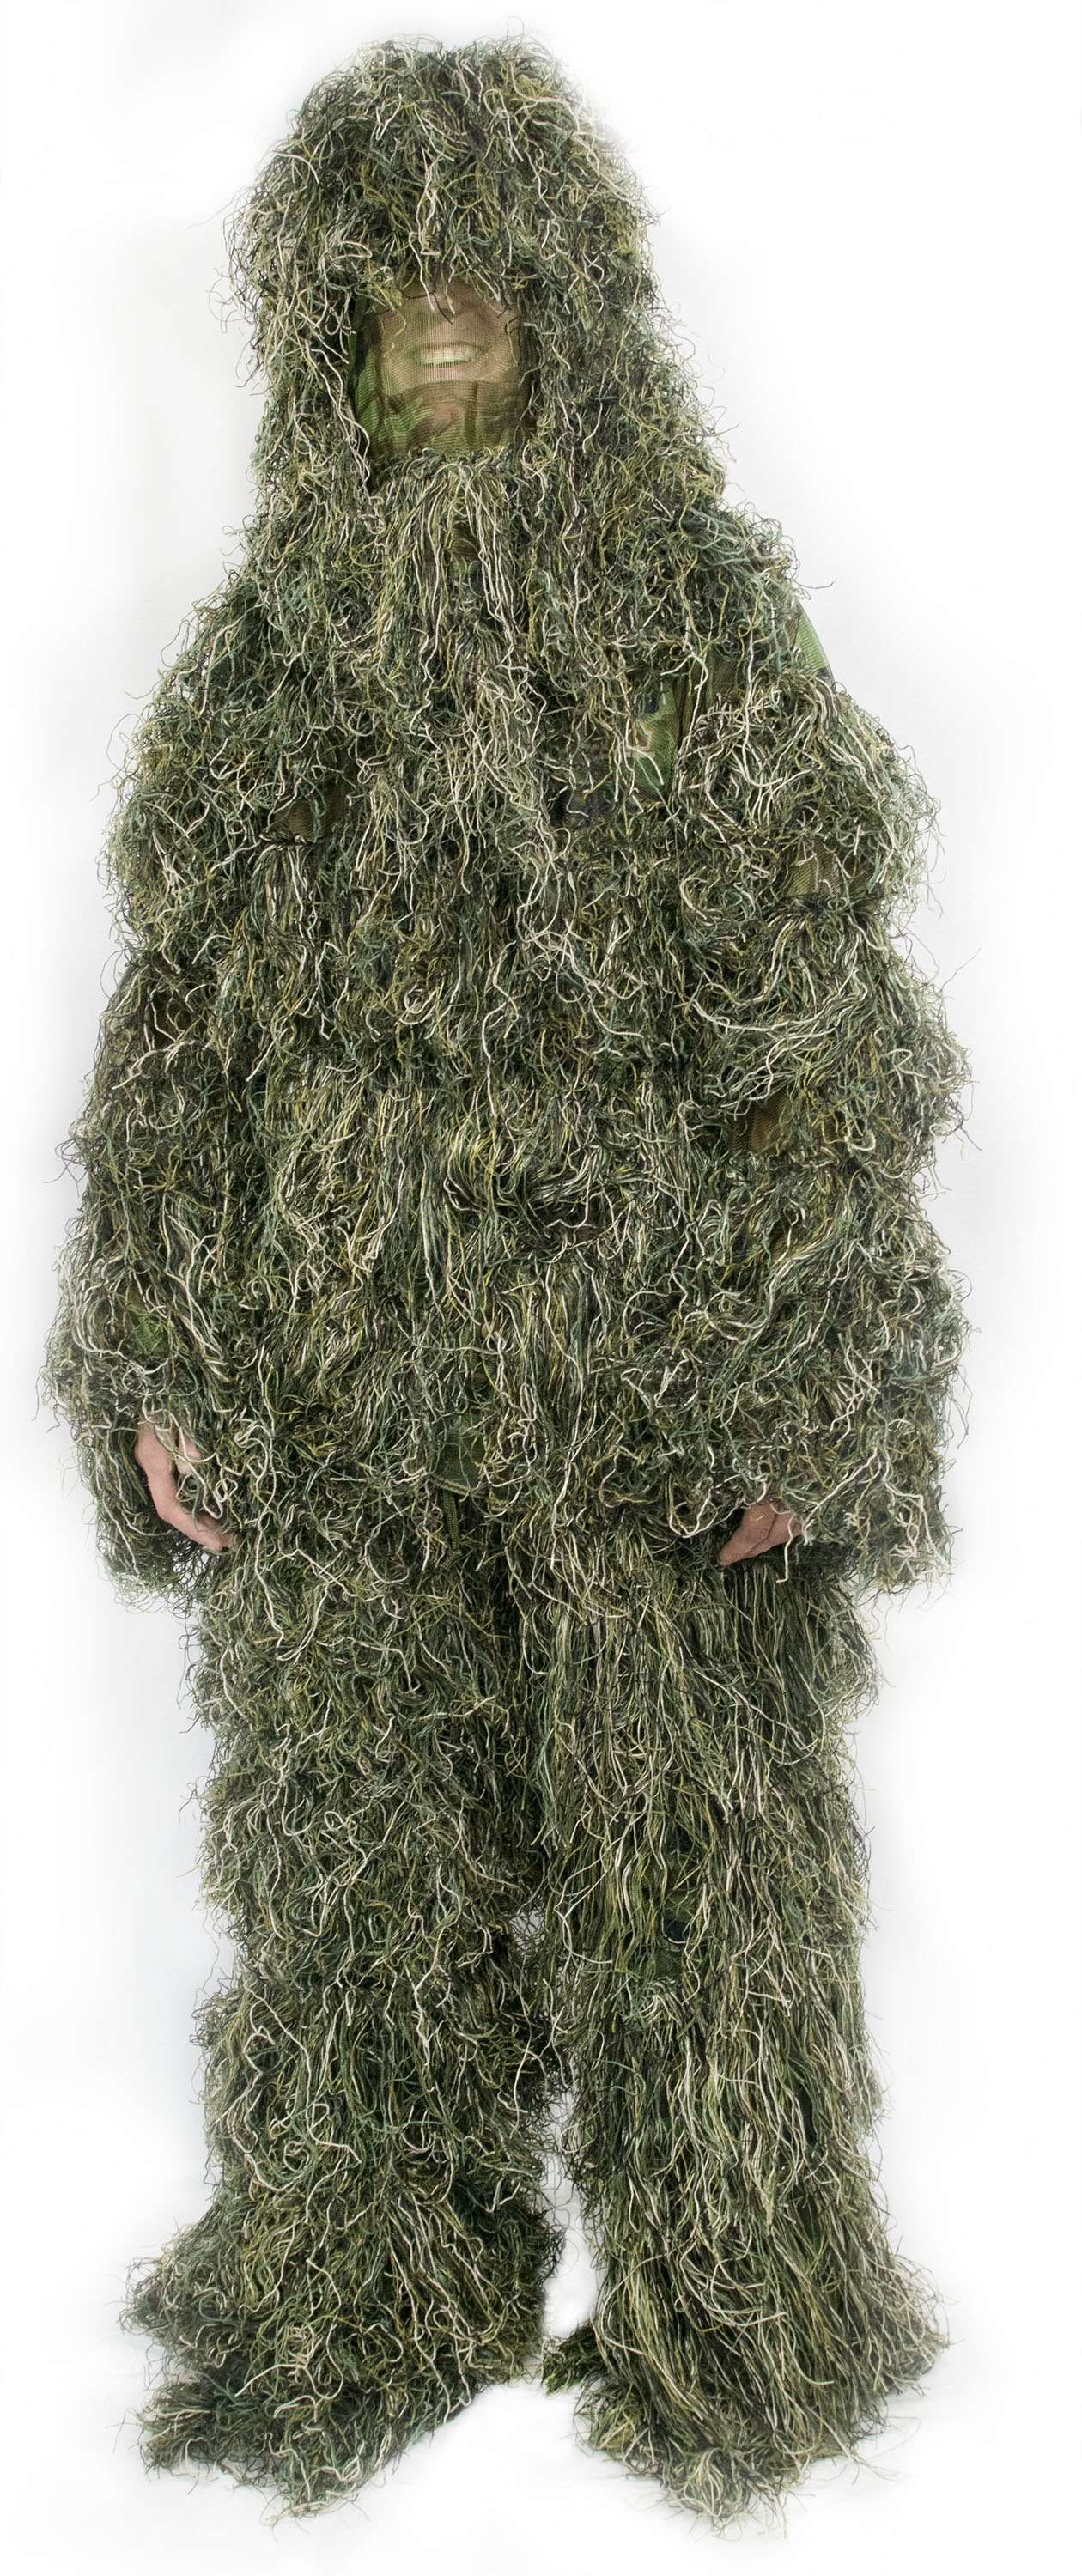 New Ghillie Suit M L Camo Woodland Camouflage Forest Hunting 3D 4-Piece + Bag by Vivo